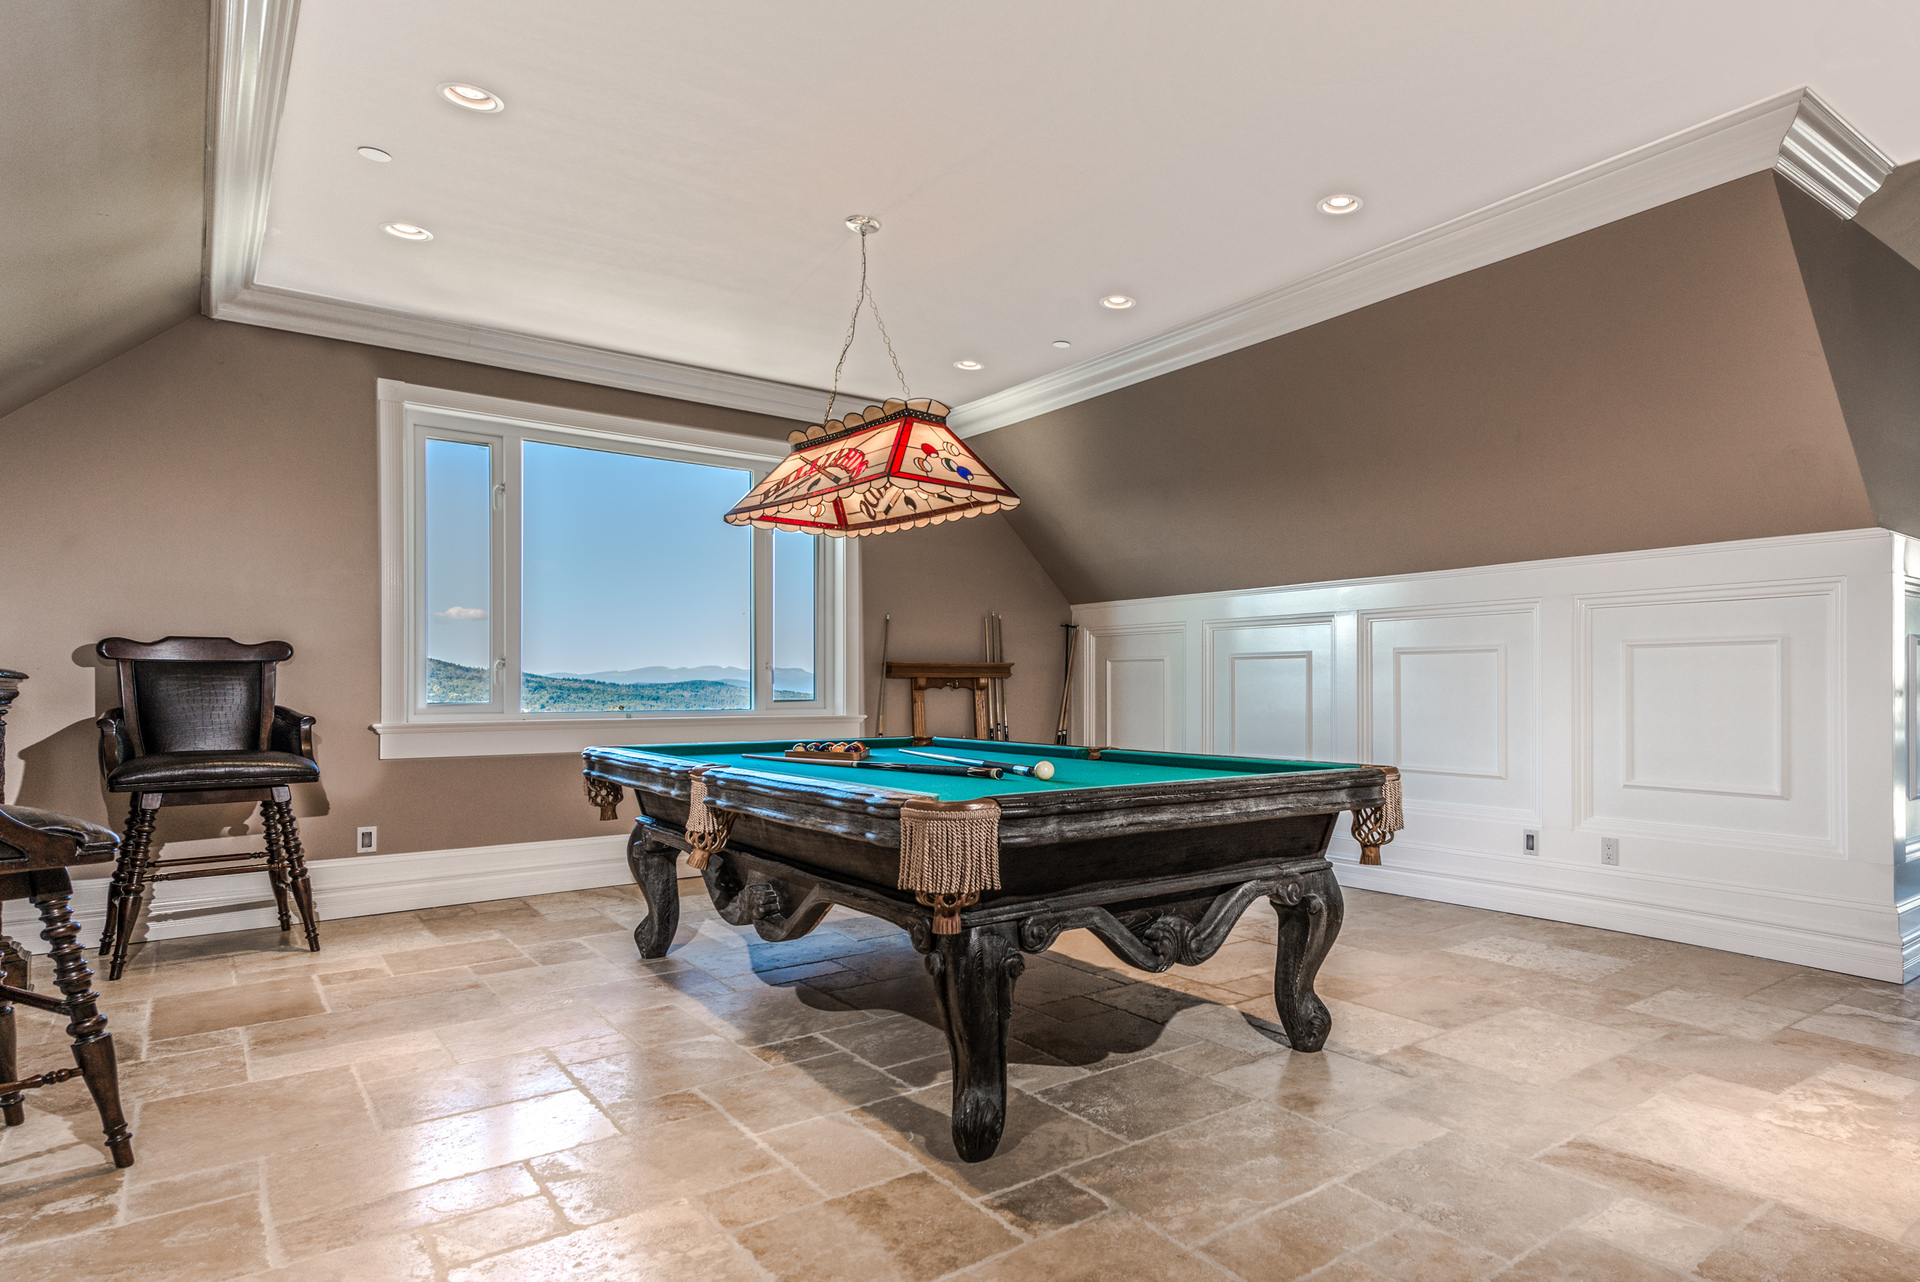 Billiards Area In The Rec Room at 6720 Willis Road, Victoria Point,